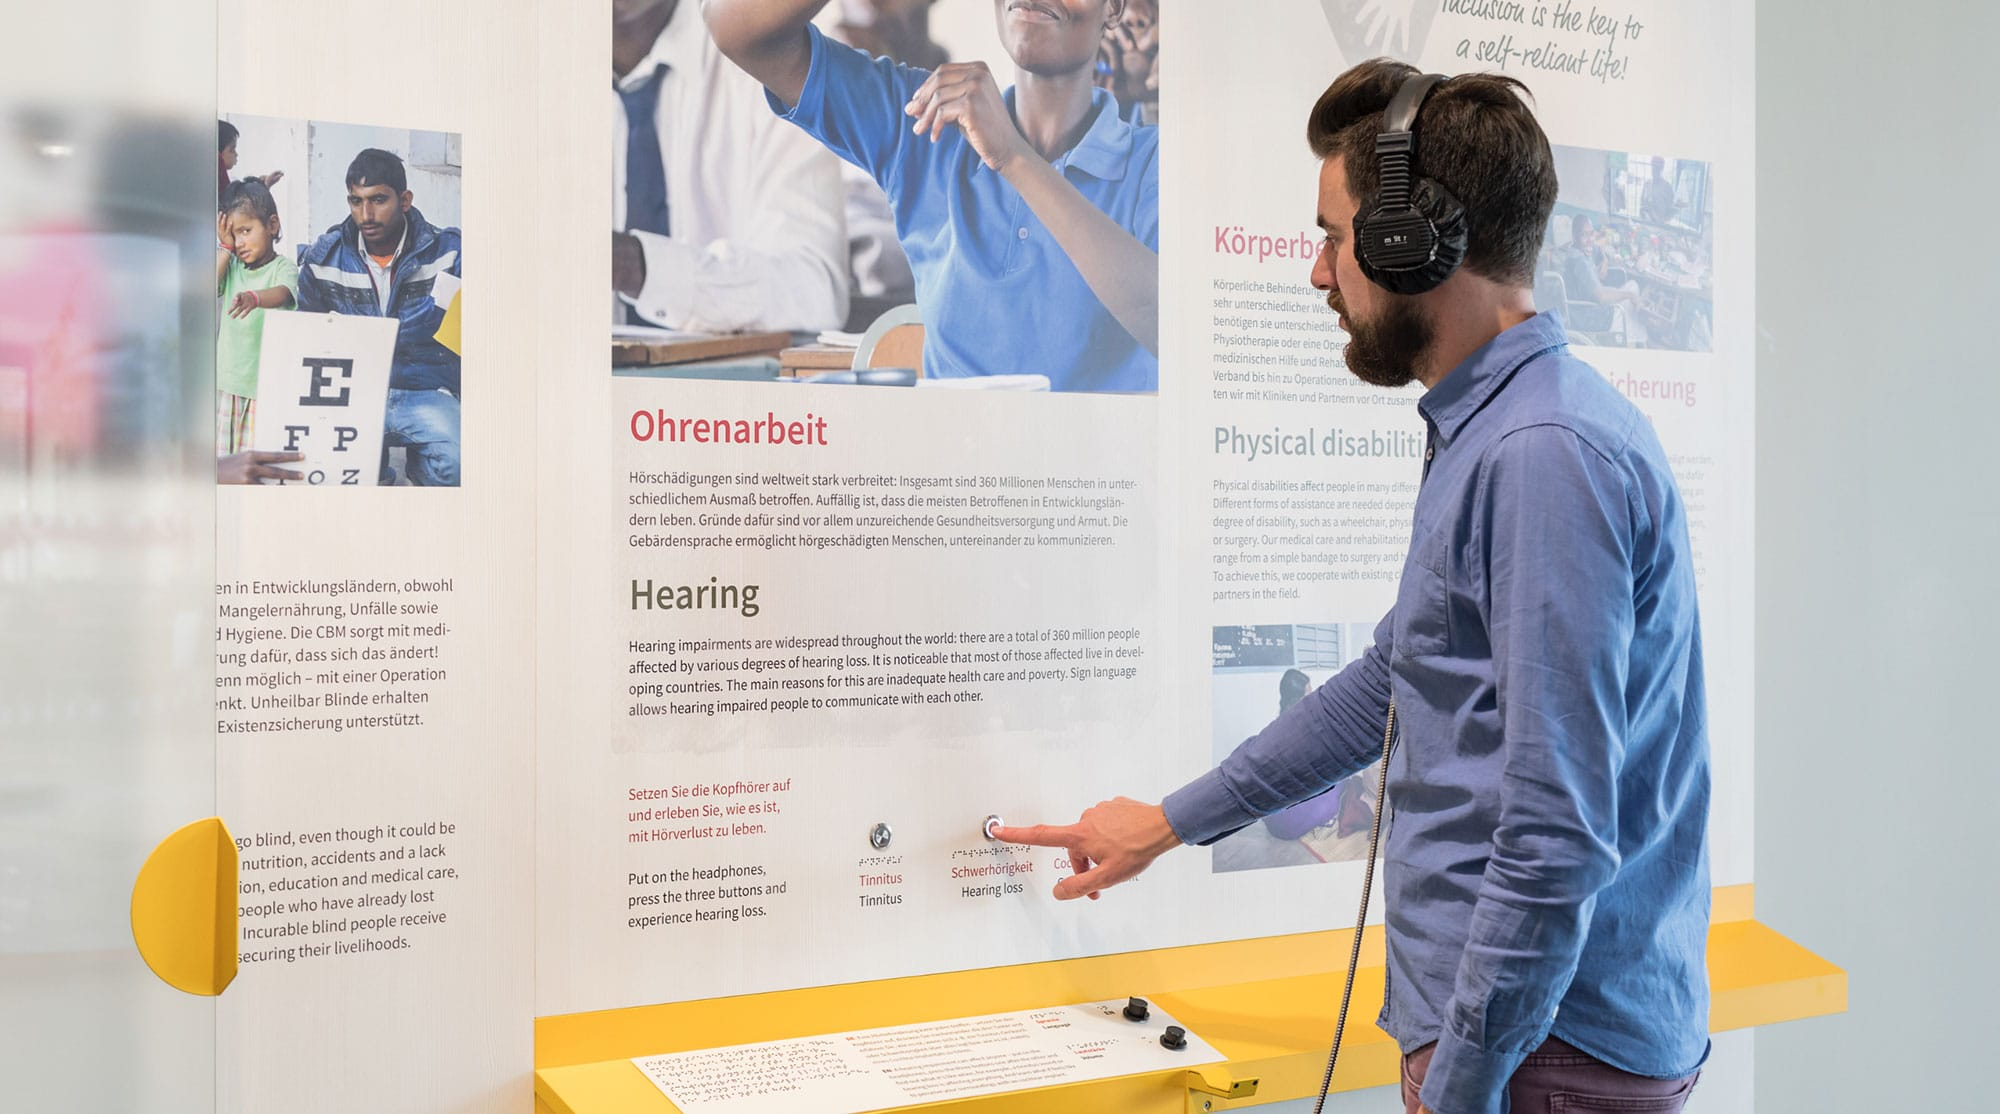 Audio station for simulation of hearing impairments